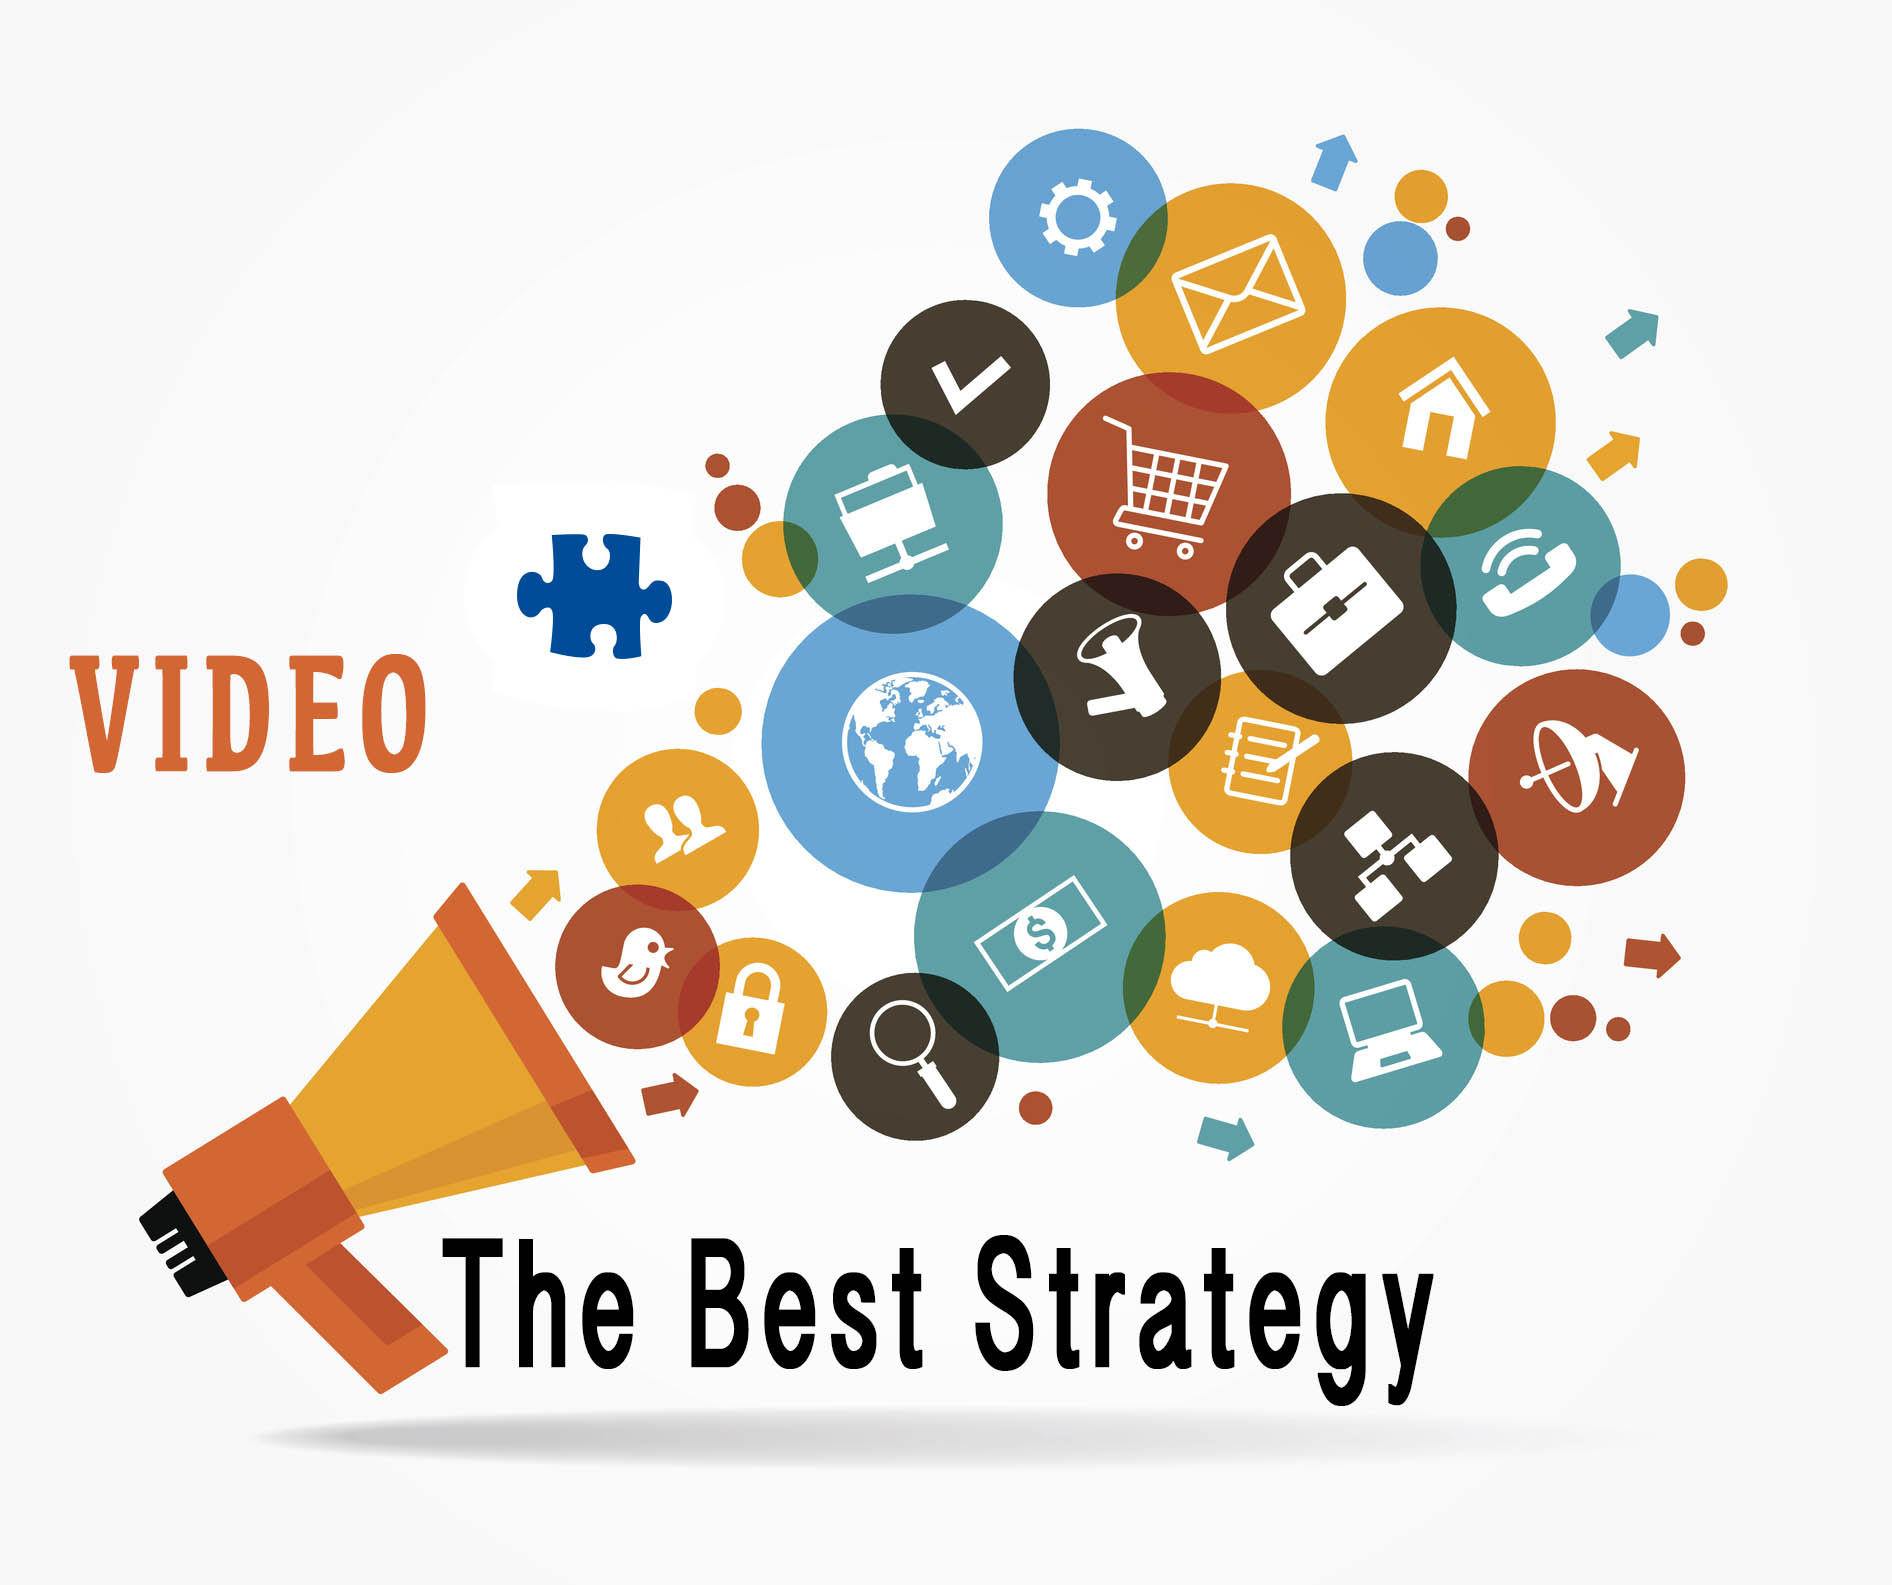 Best Strategy Video Marketing